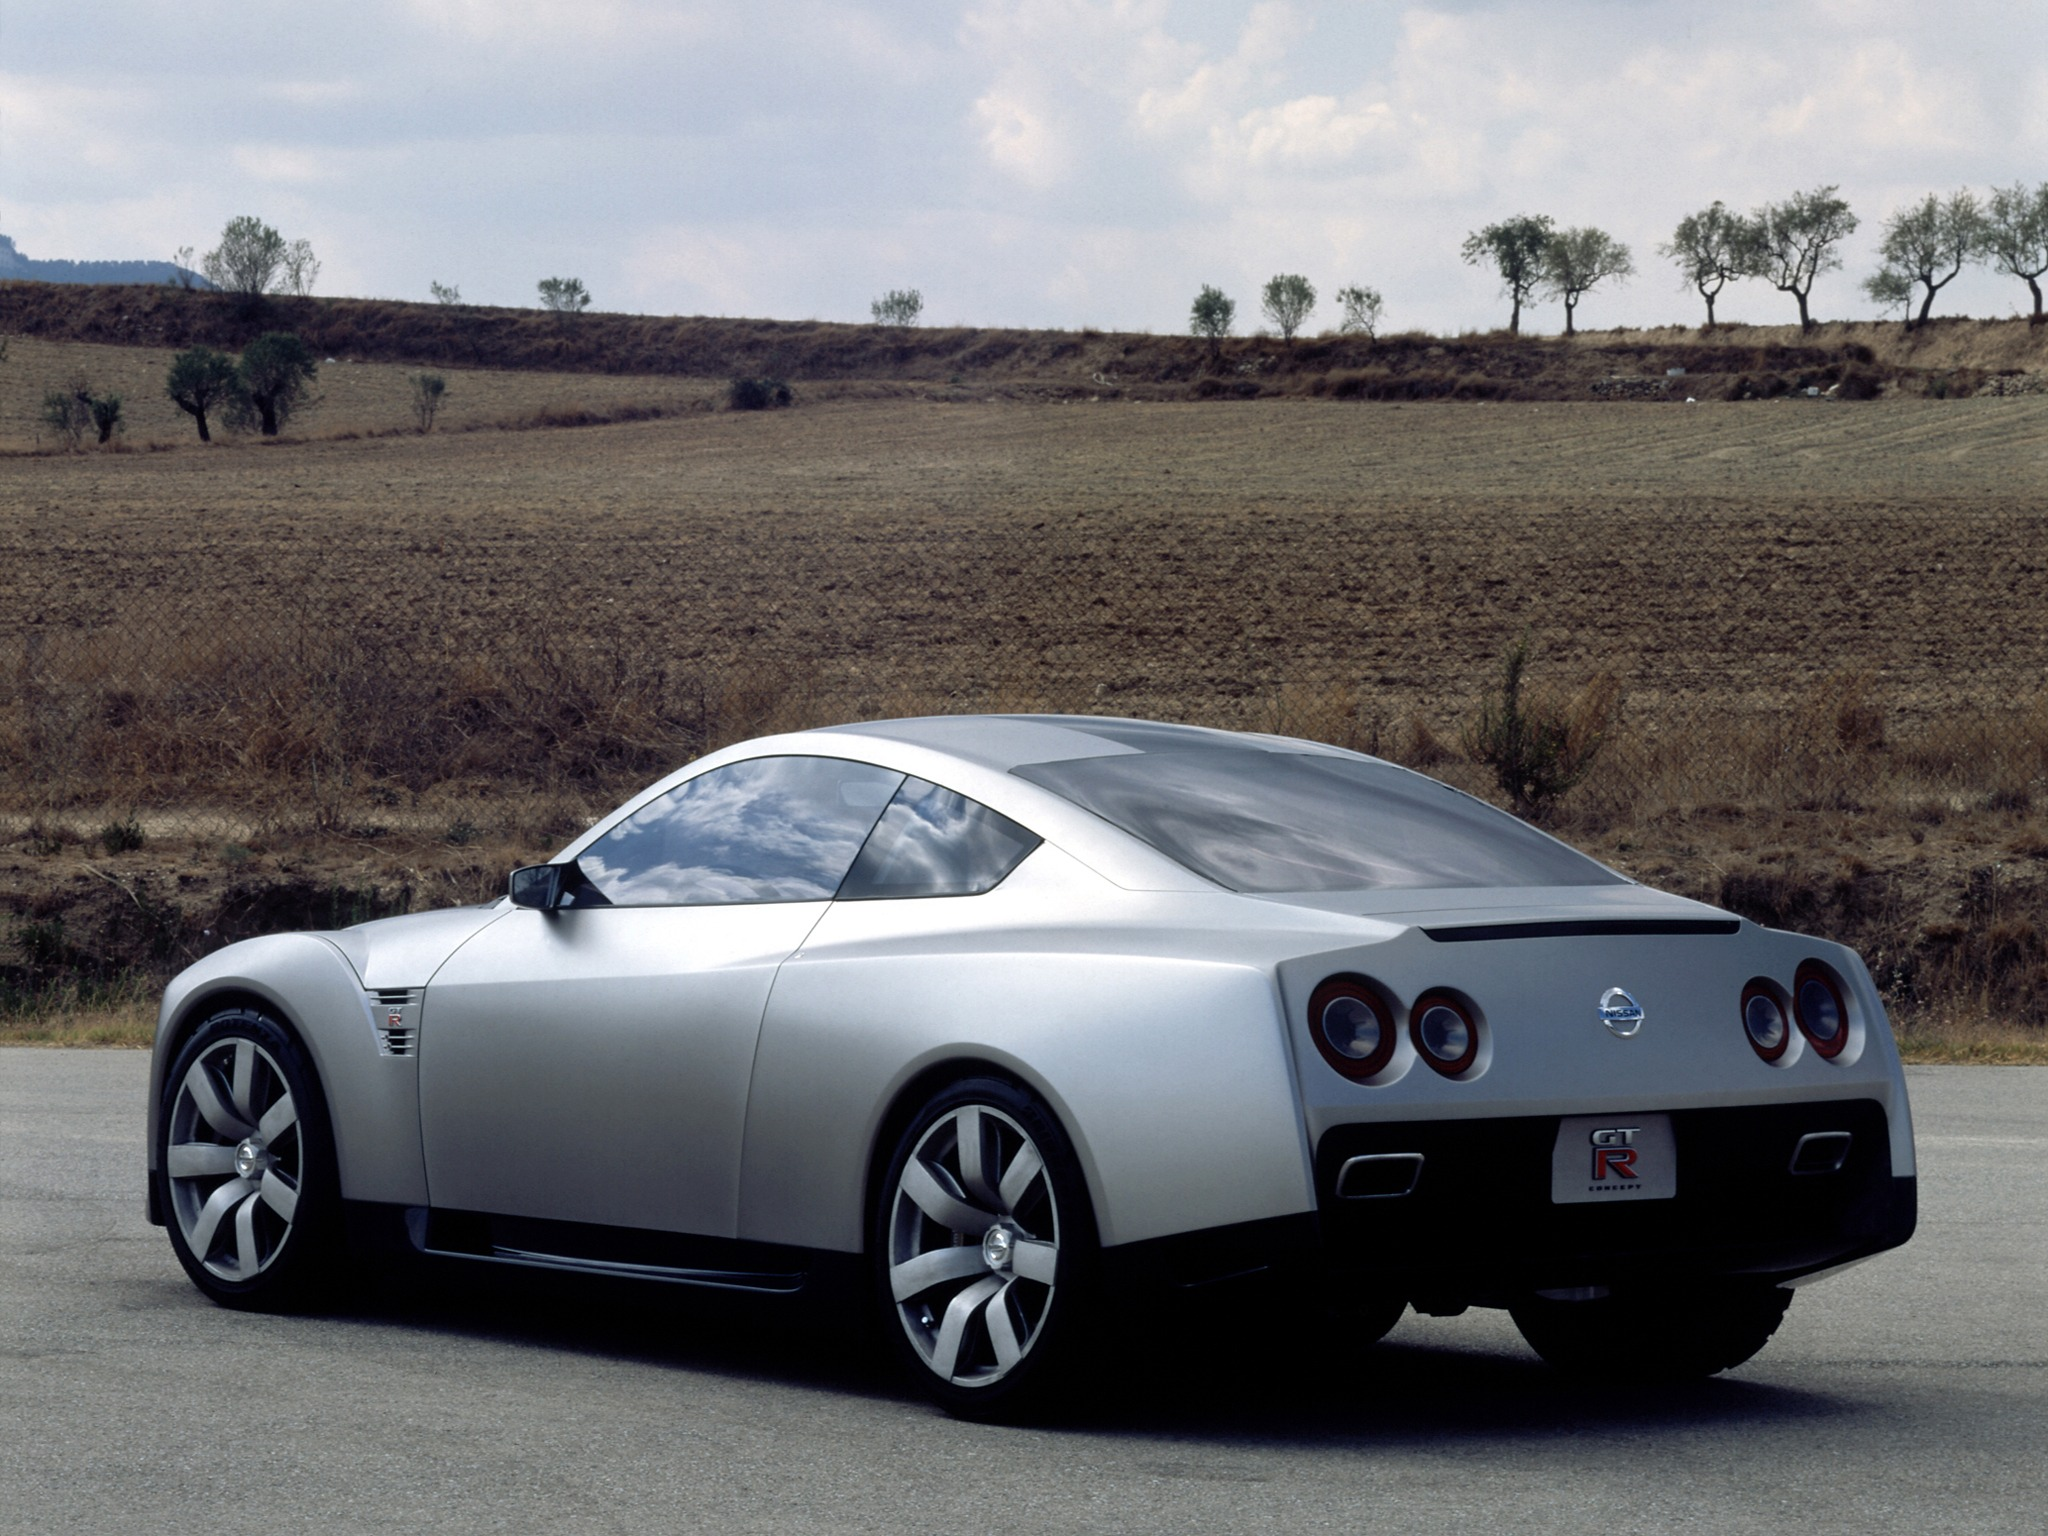 Nissan GT-R Proto Concept (2001) - Old Concept Cars